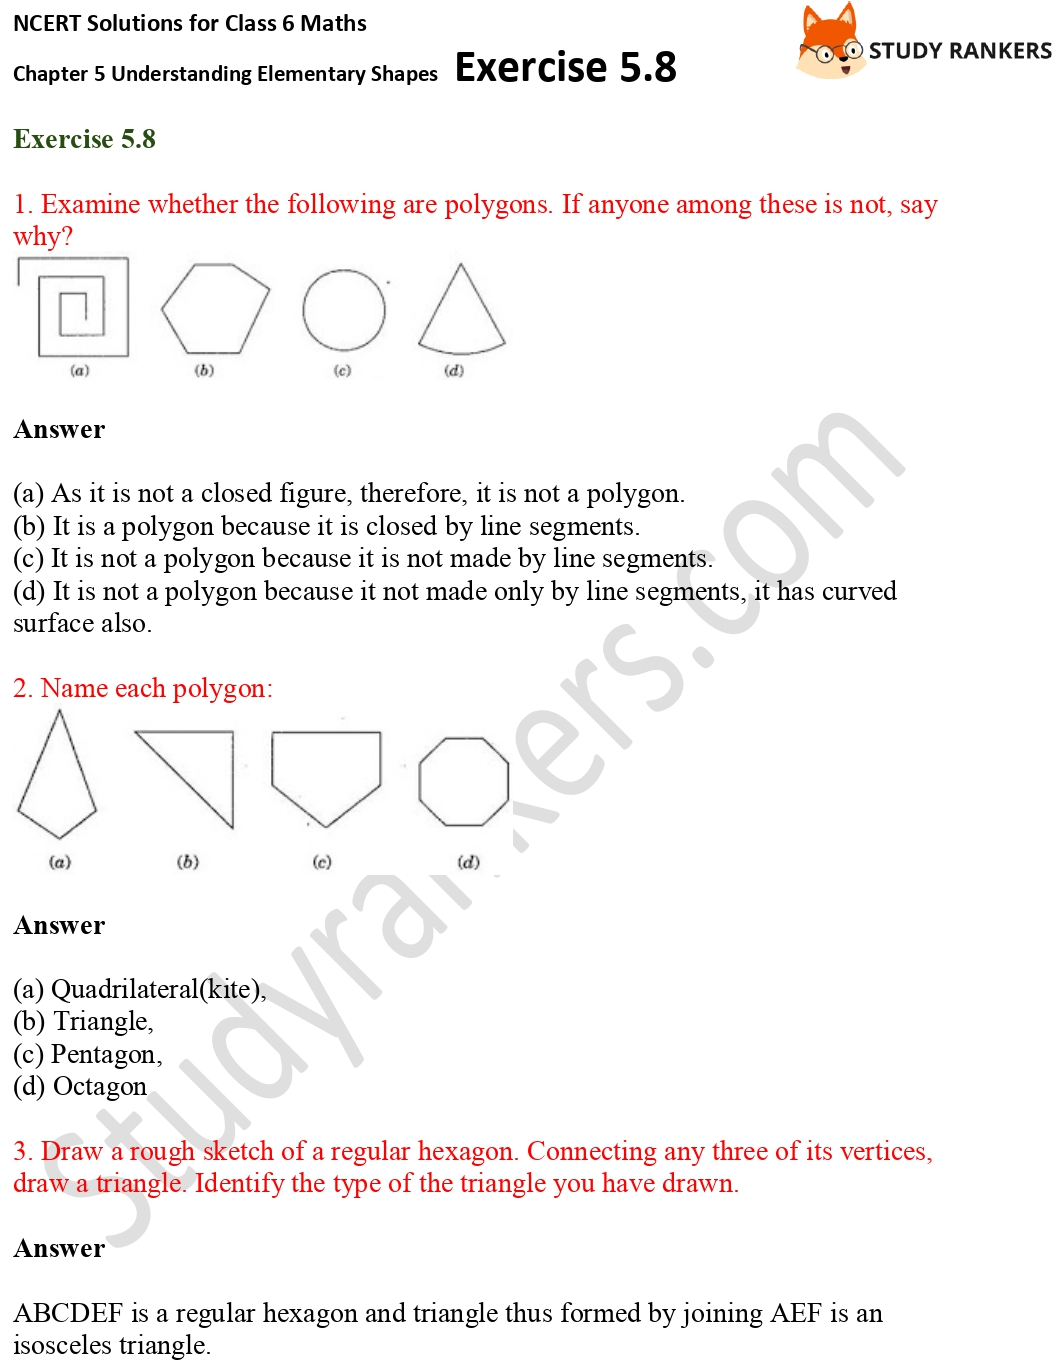 NCERT Solutions for Class 6 Maths Chapter 5 Understanding Elementary Shapes Exercise 5.8 Part 1